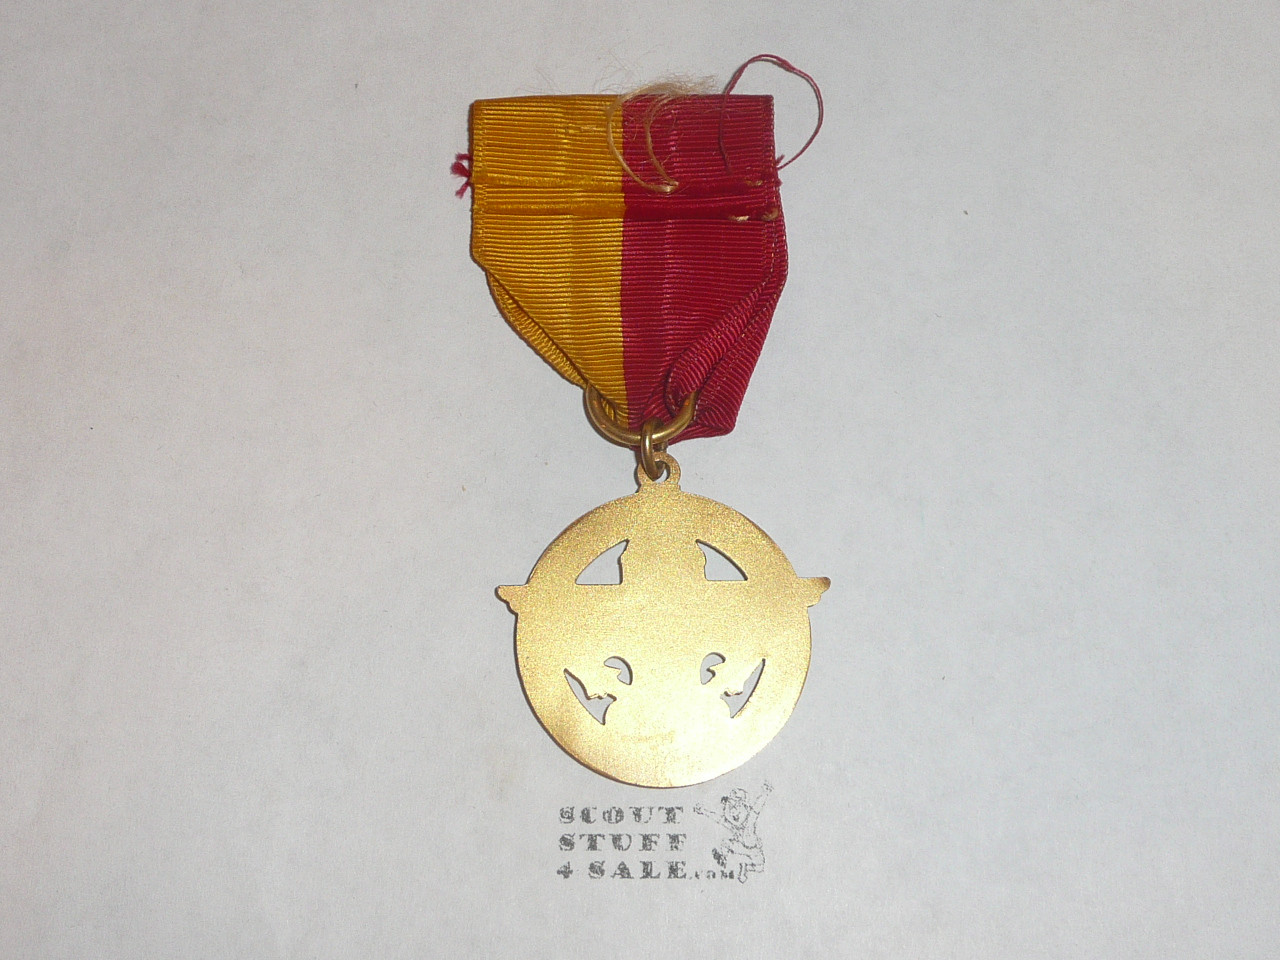 Explorer GOLD Award Medal, Type 1, 1940's, Very few were ever Awarded, MINT condition but not pin bar on back, RARE